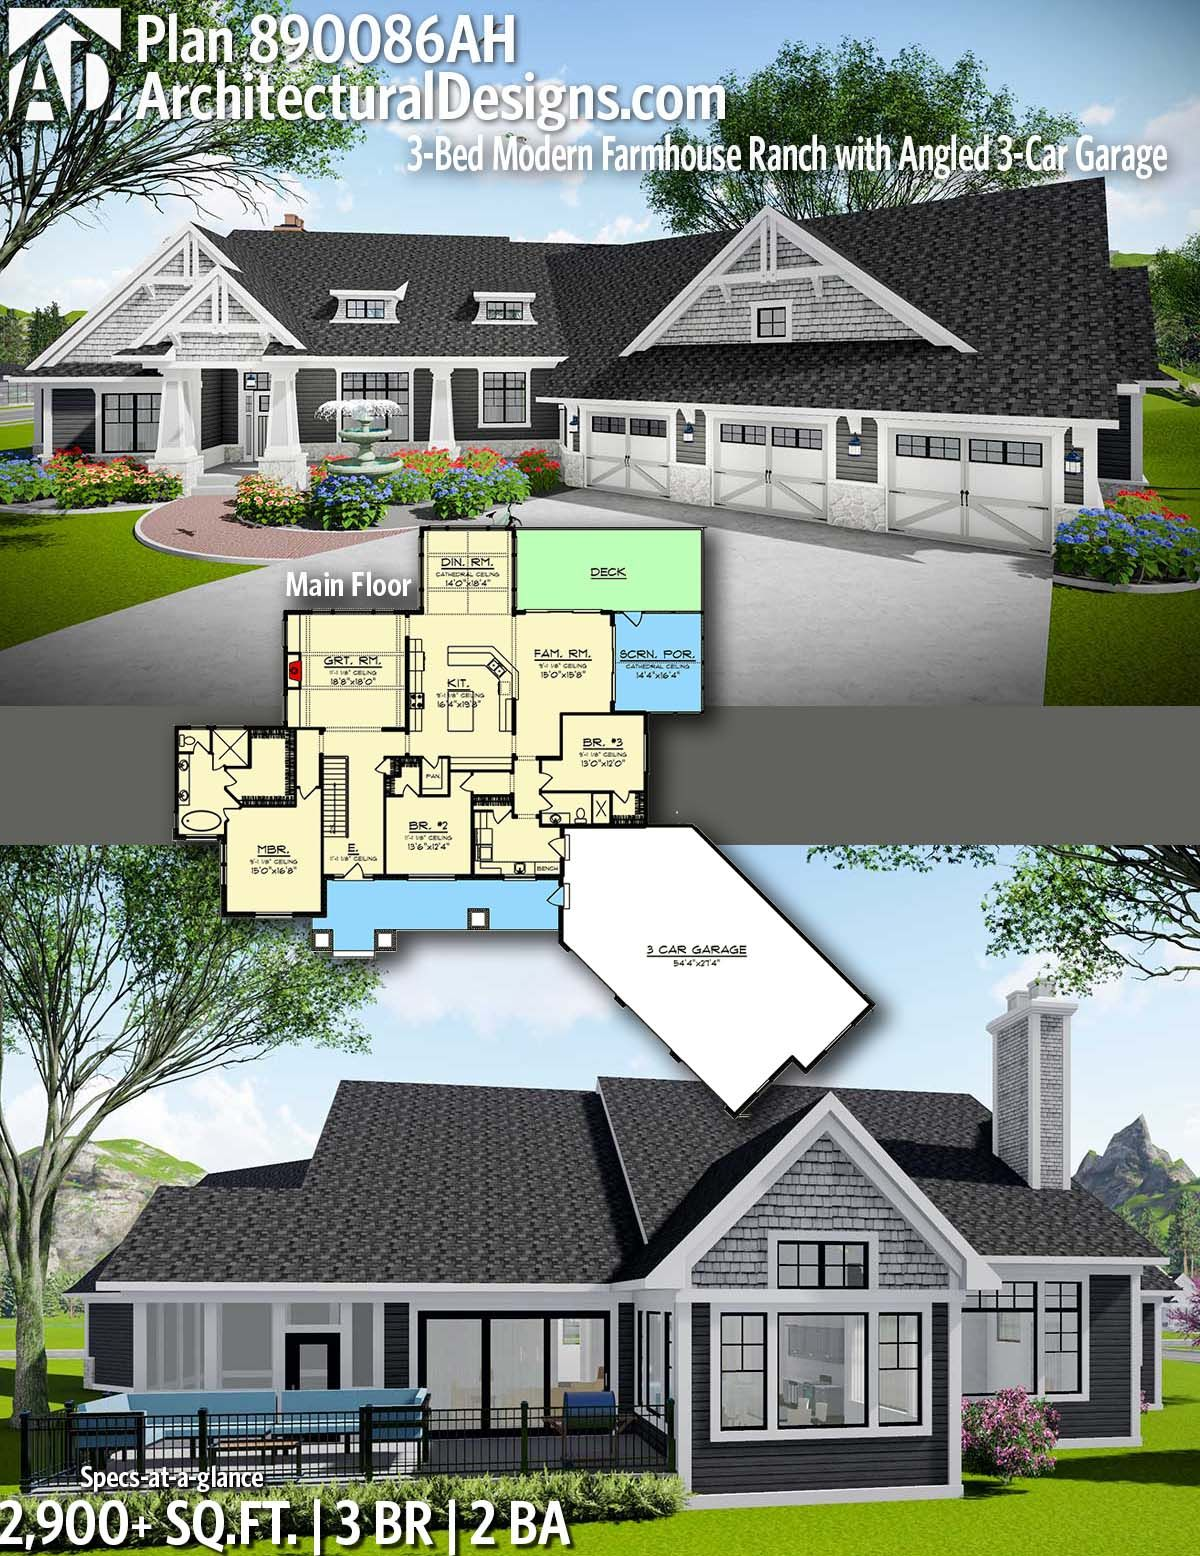 Plan 890086ah 3 Bed Modern Farmhouse Ranch With Angled 3 Car Garage Ranch Style House Plans Modern Farmhouse Exterior House Plans